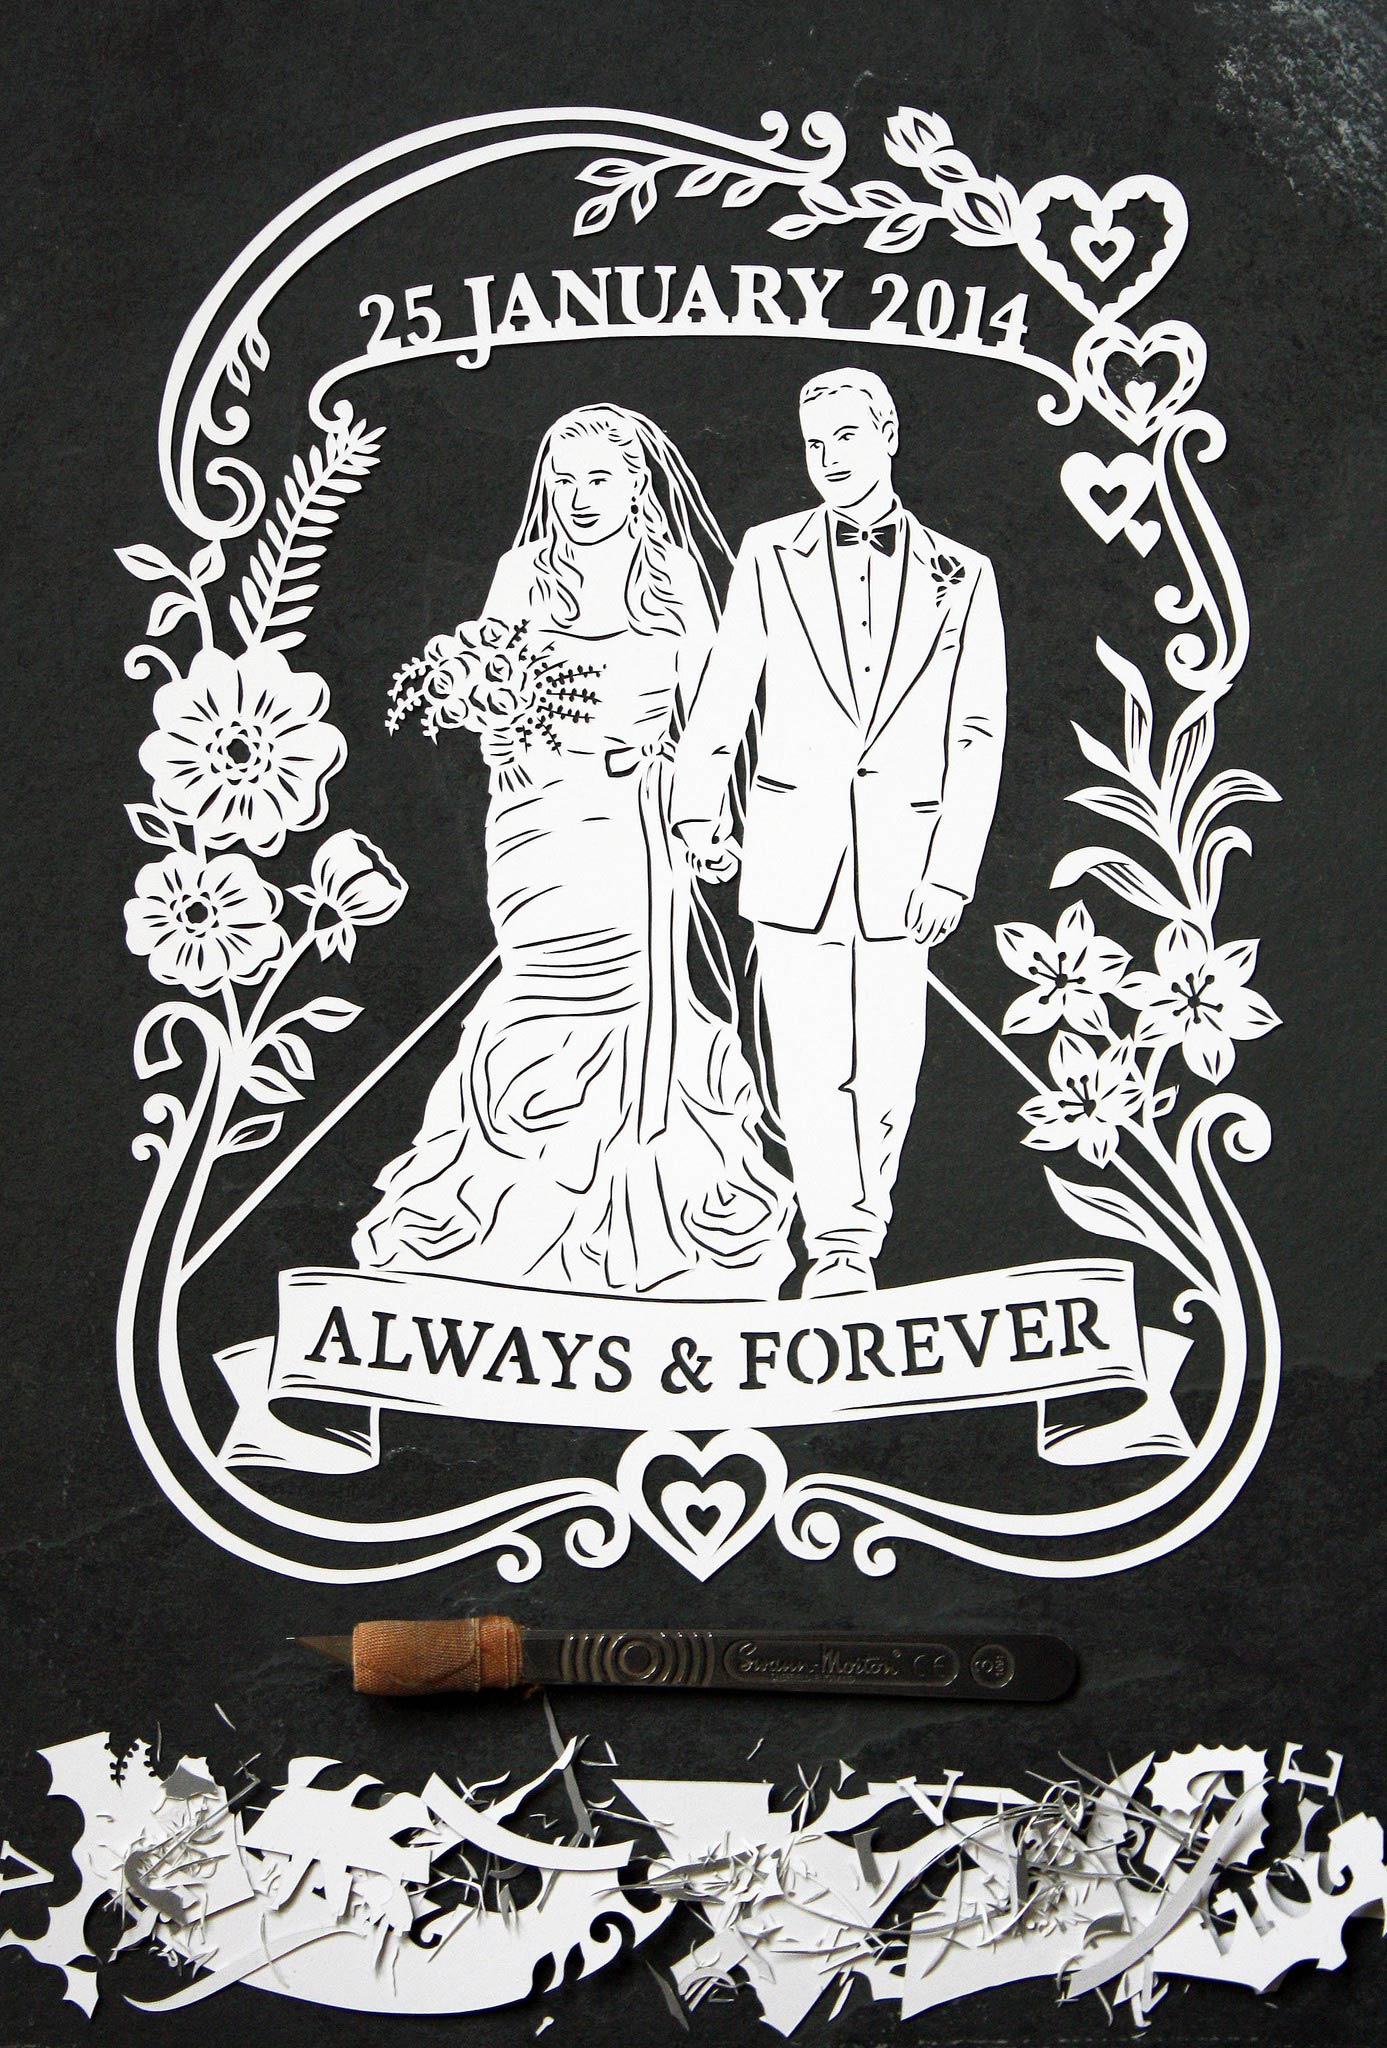 papercut illustration for anniversary, couple married love